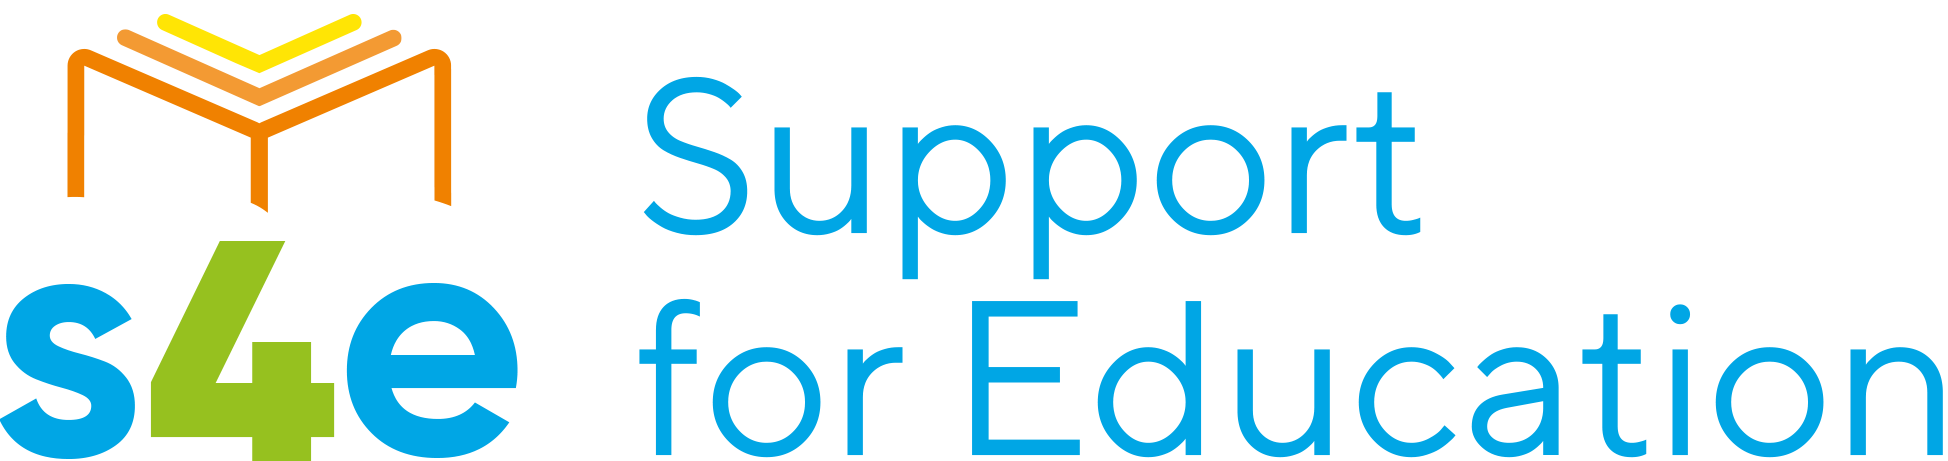 Support For Education 11+ Tuition Birmingham